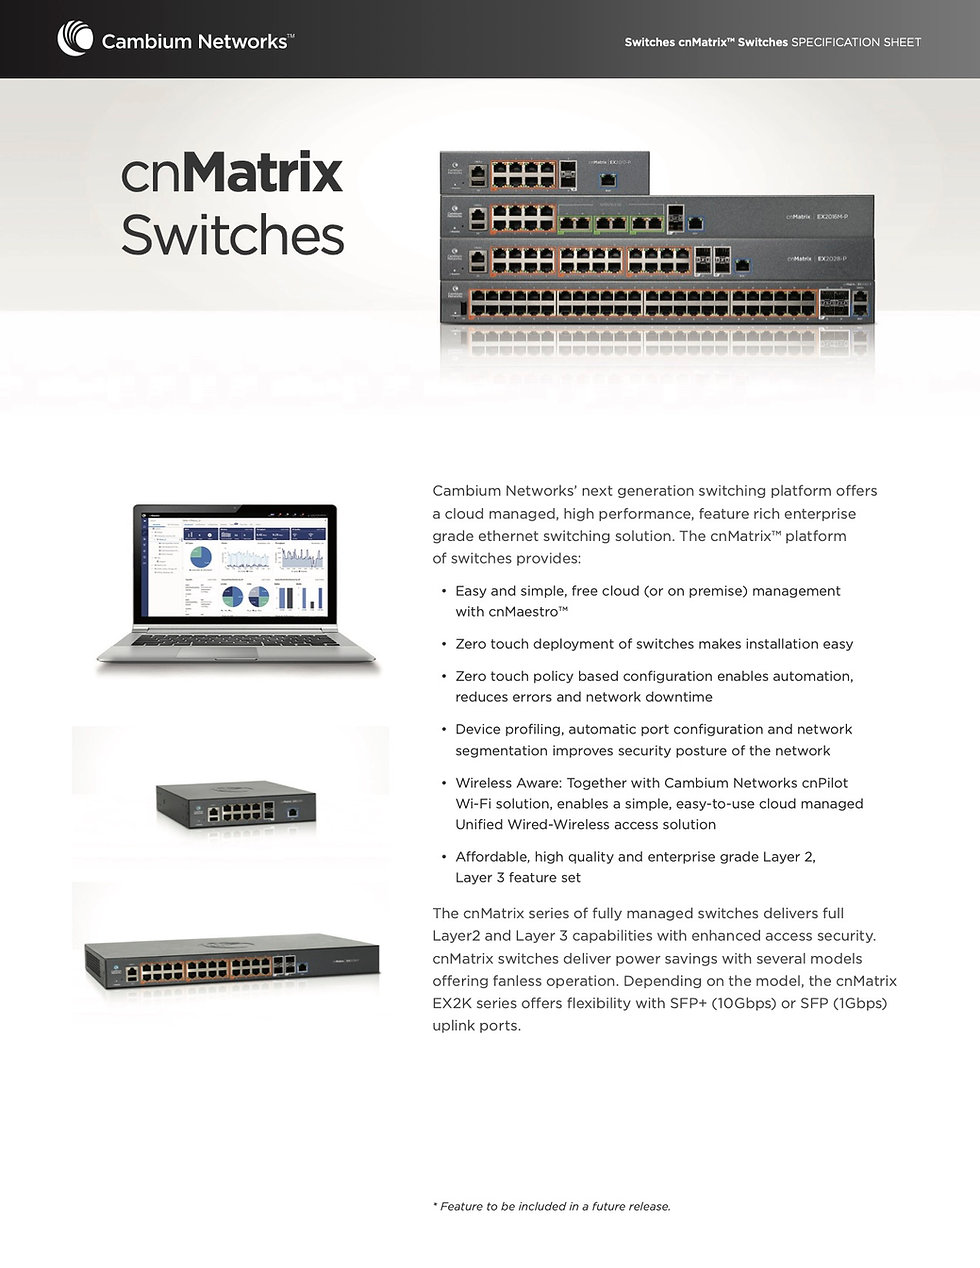 Cambium cnMatrix Switches Specification